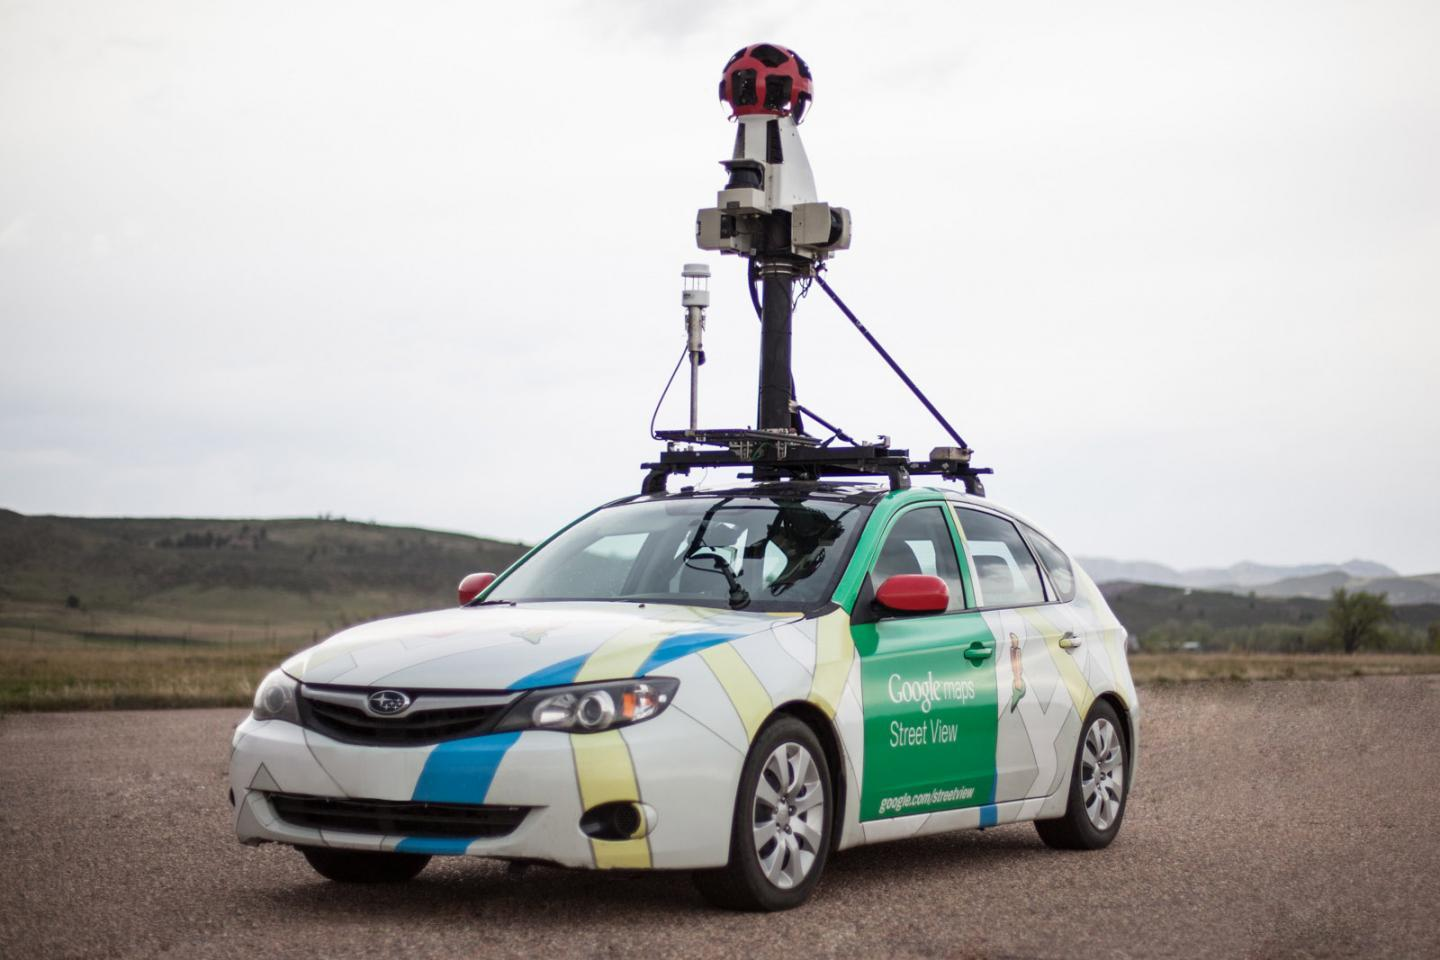 Google Street View's Cars Are Now Mapping Gas Leaks Across America